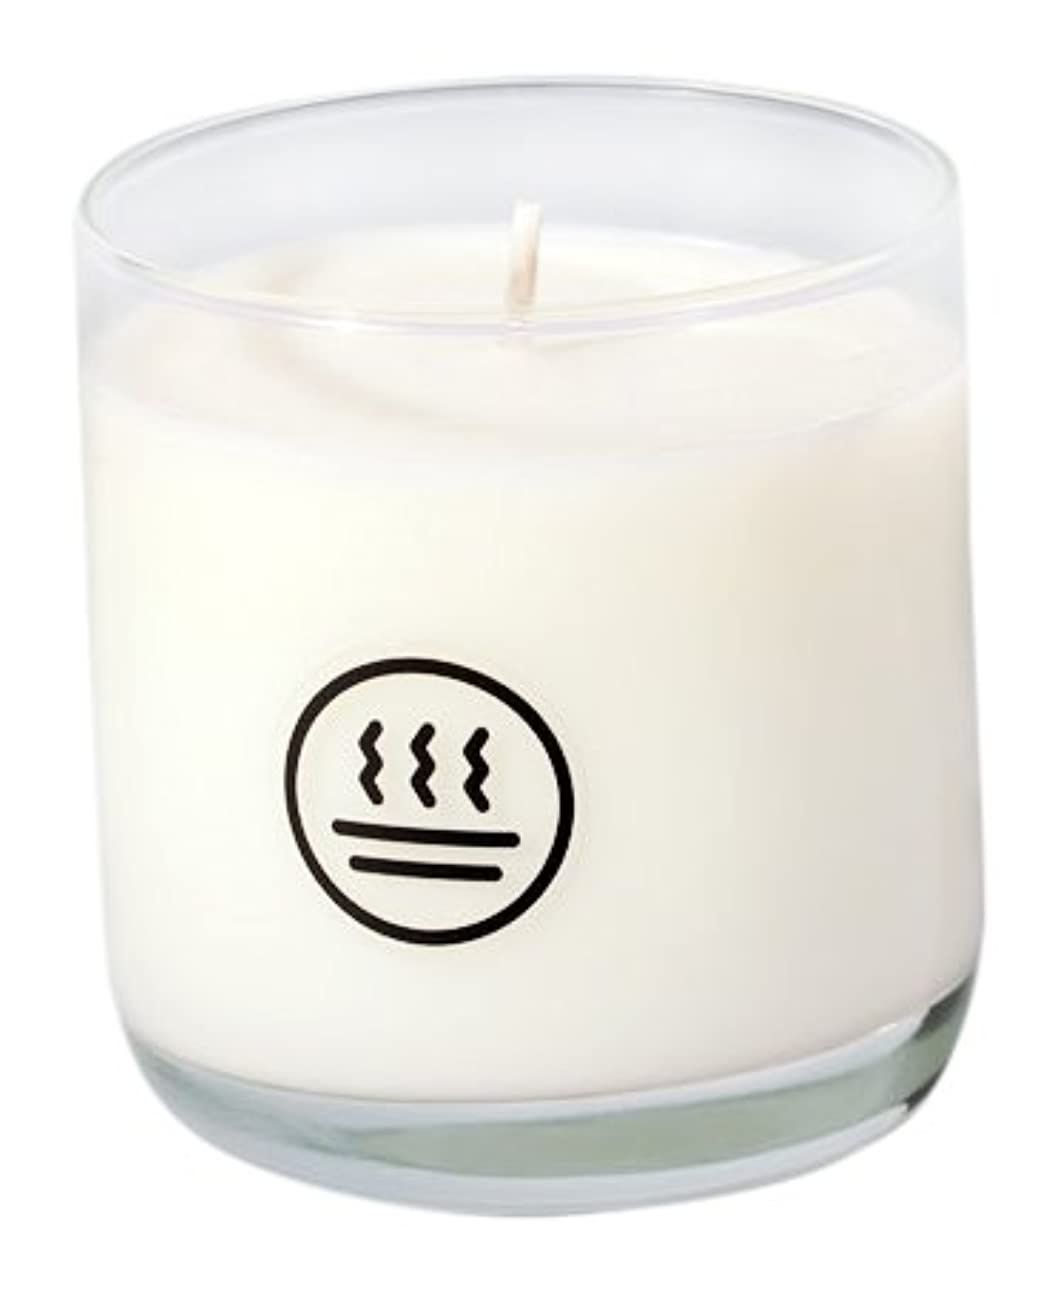 吸うネイティブ暴動Keap Hot Springs scented candle, made with coconut wax - 7.4Oz each